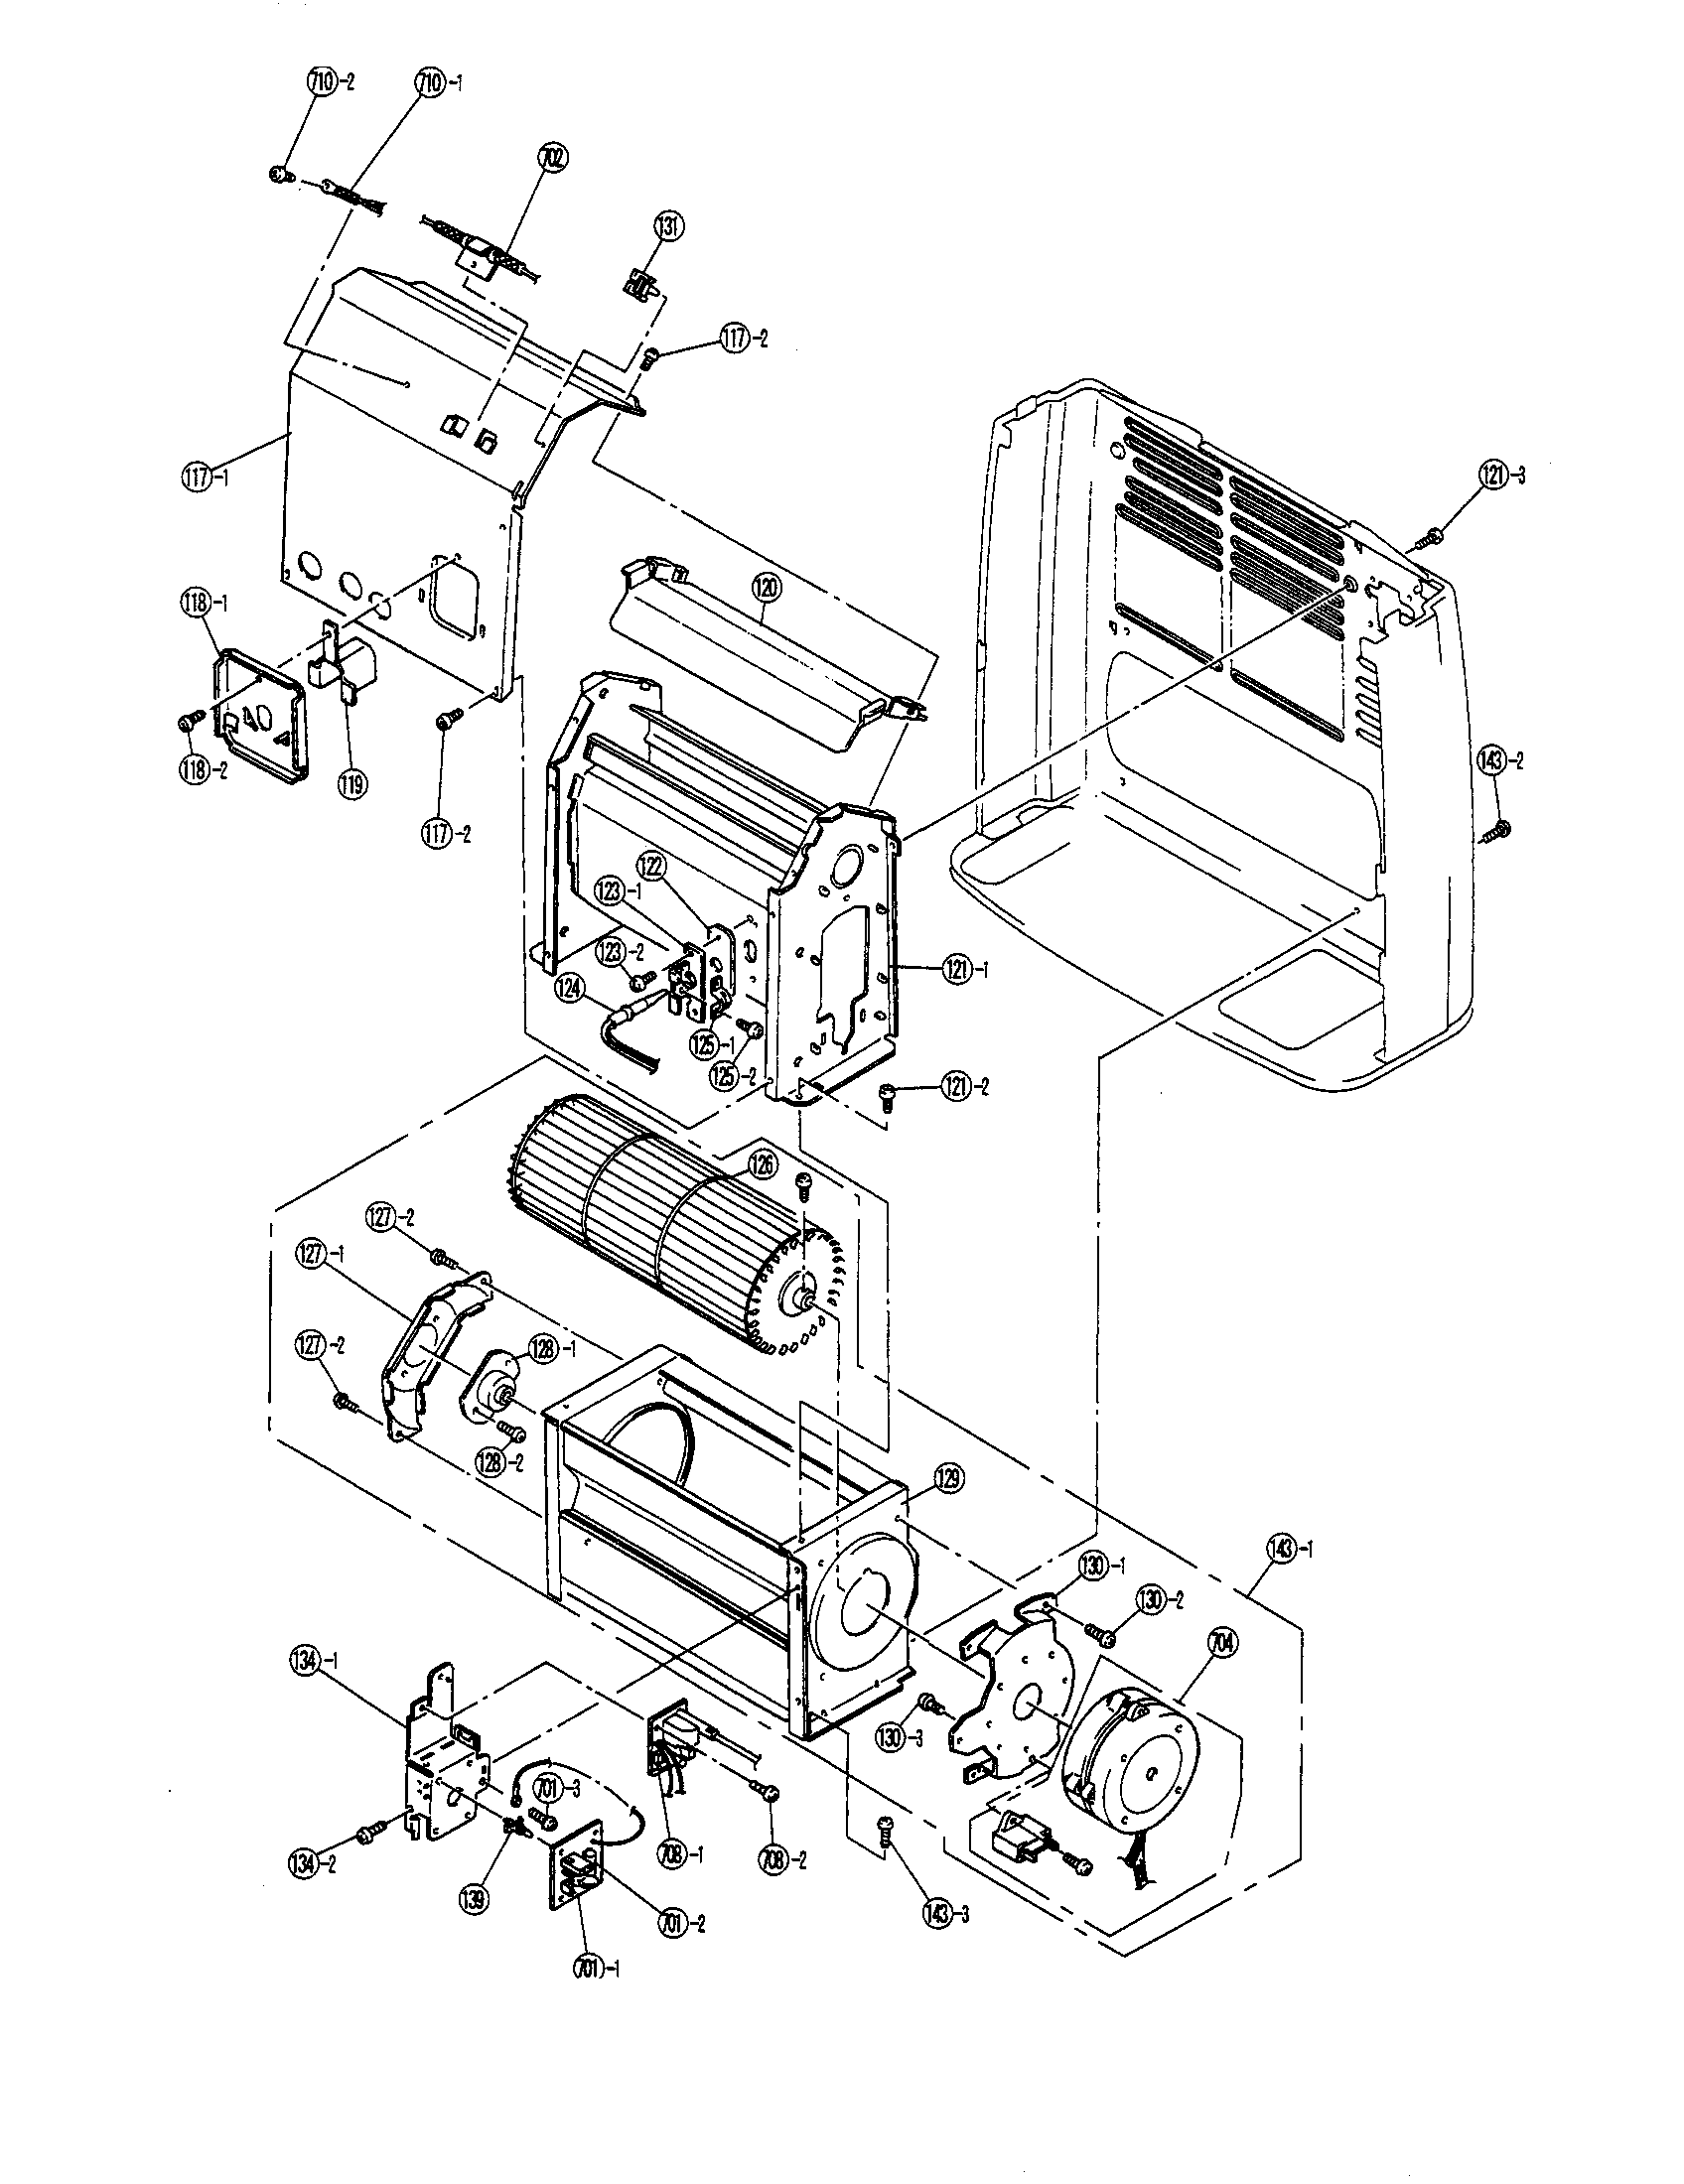 73 87 Chevy Wiring Diagrams Site. Chevy. Auto Wiring Diagram